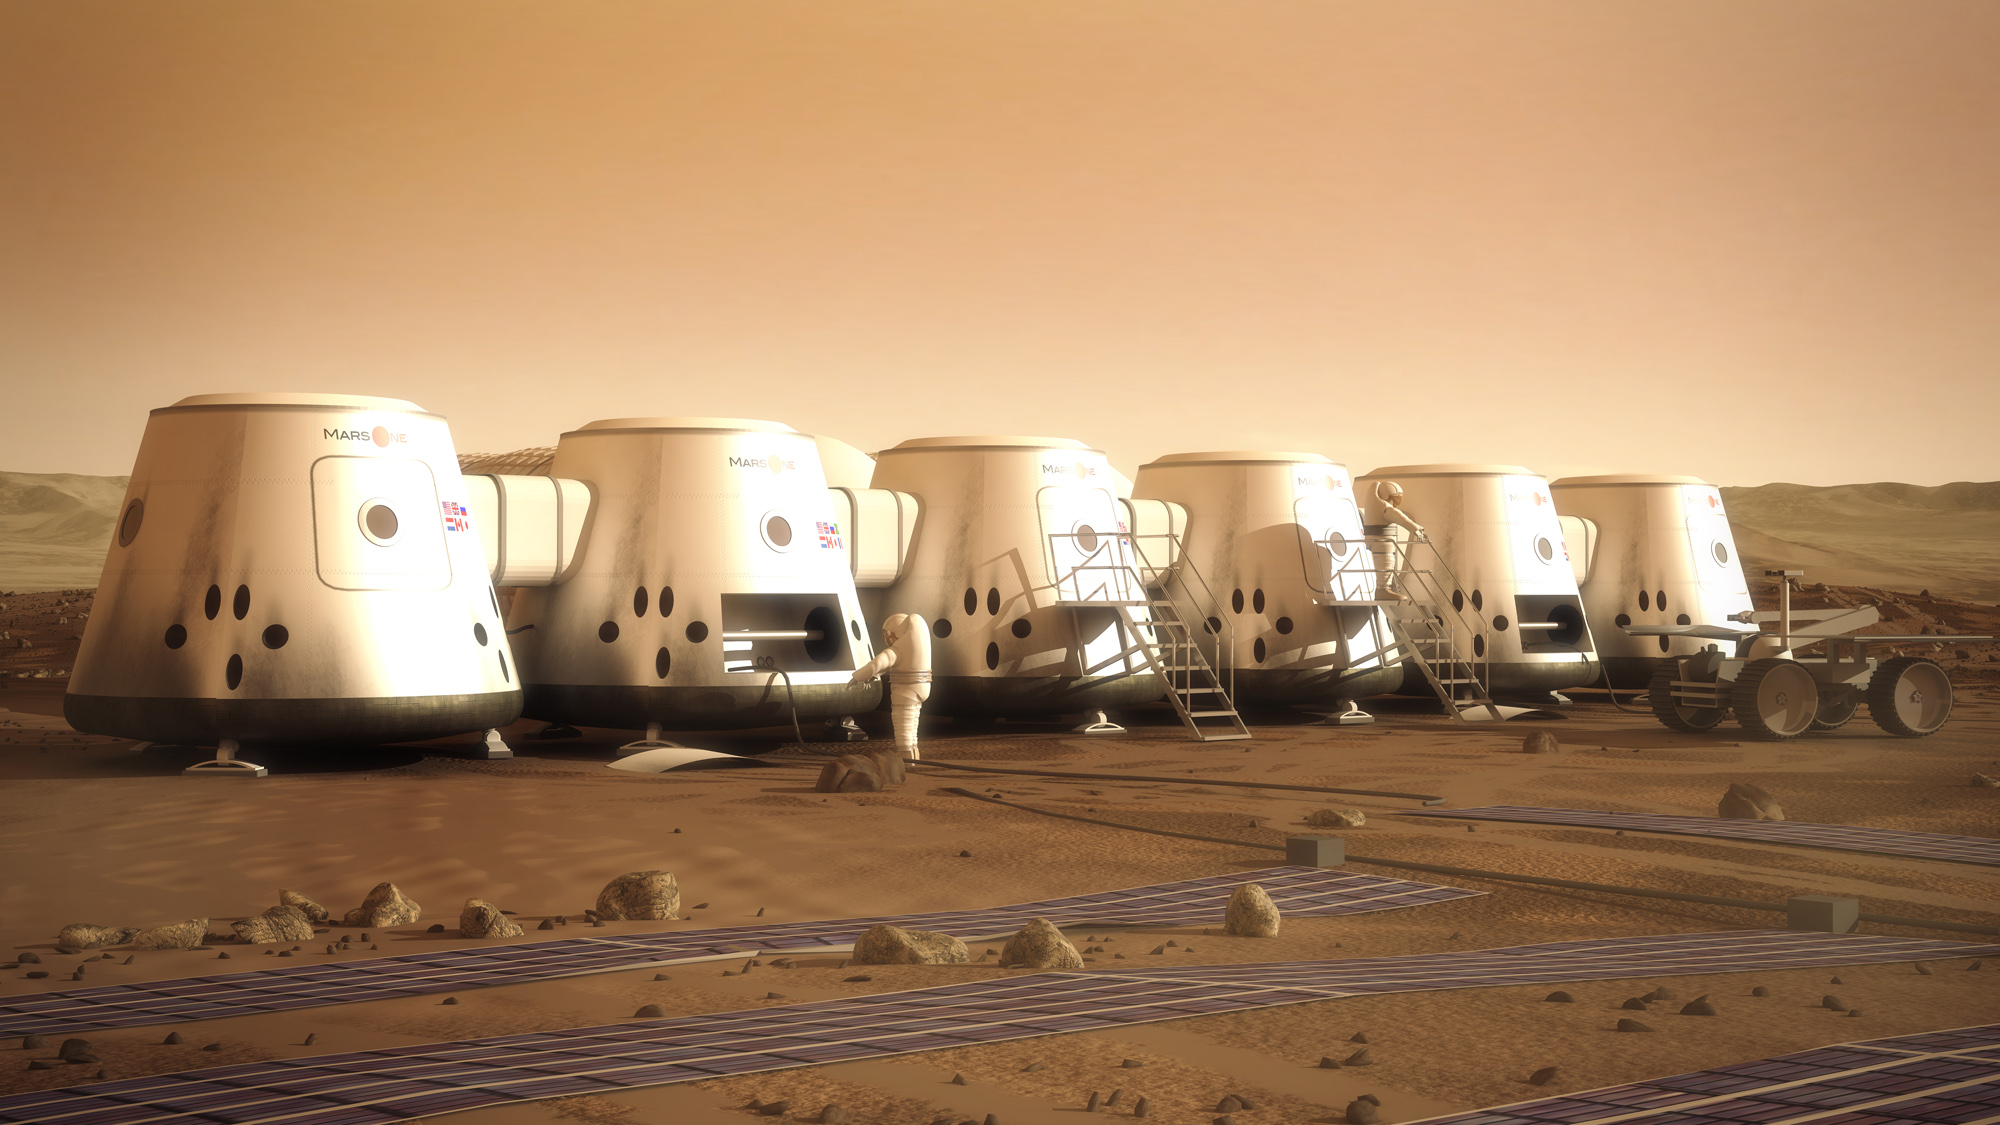 Red Planet or Bust: 5 Manned Mars Mission Ideas